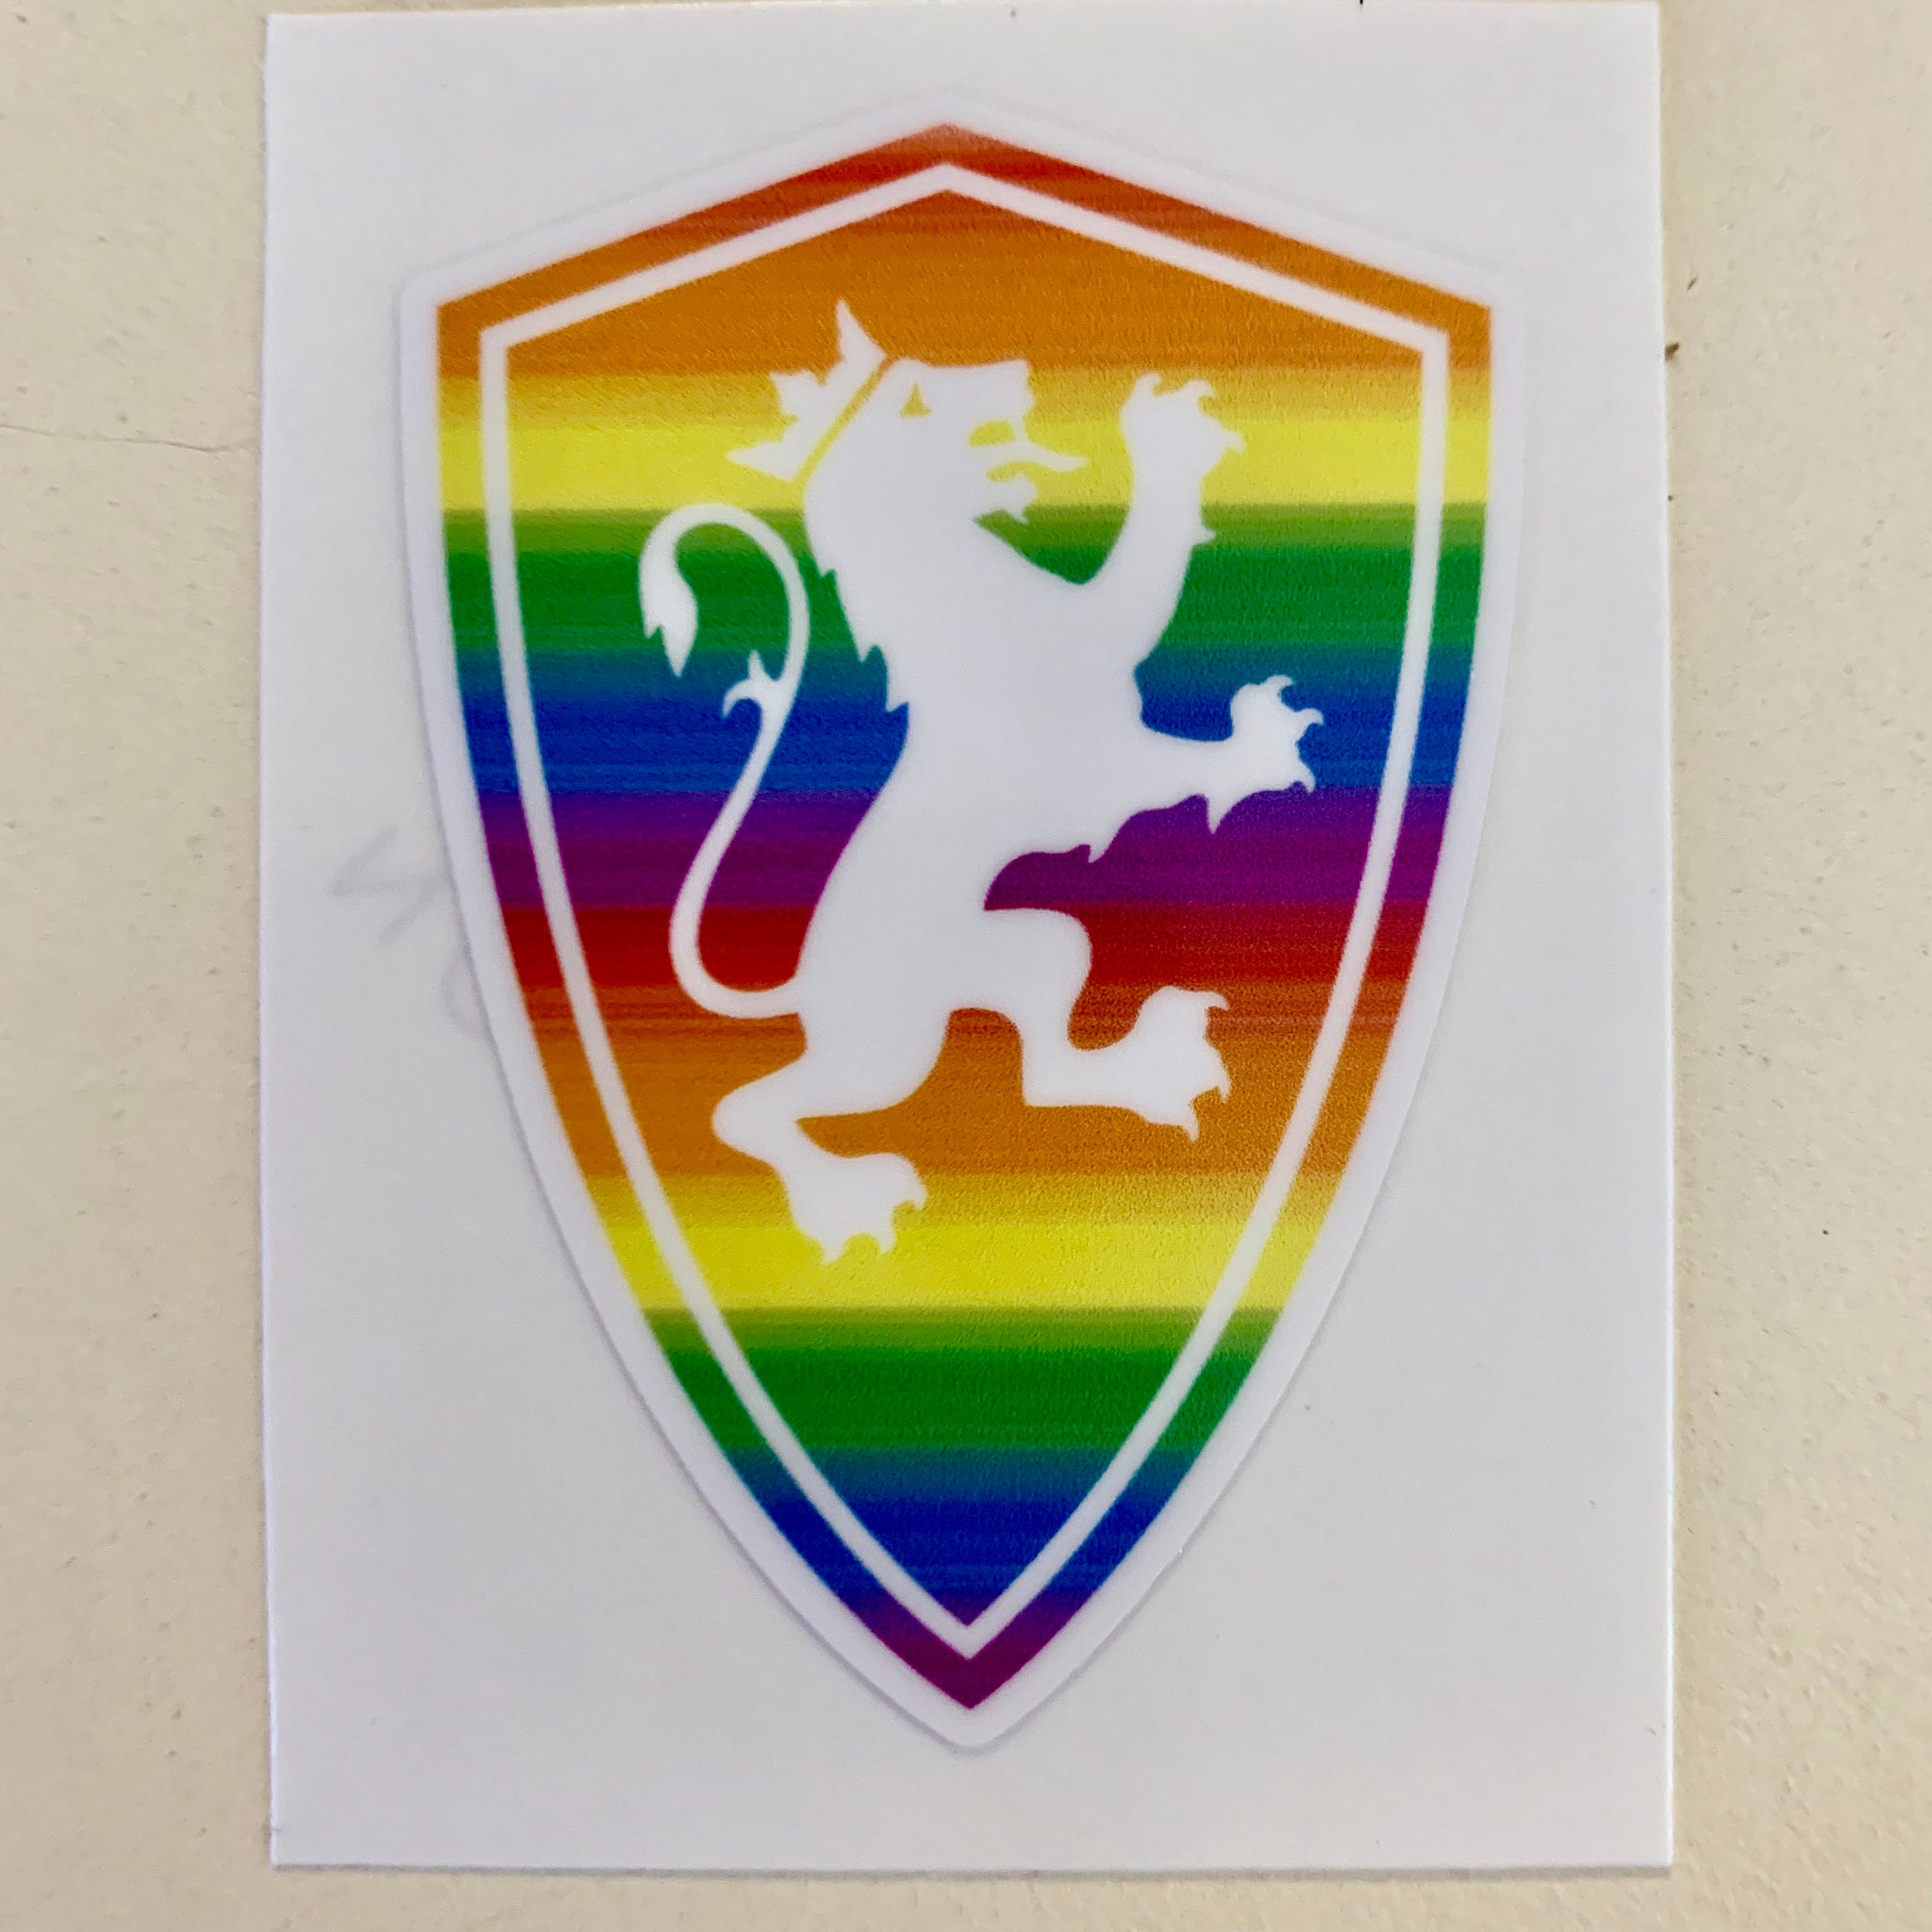 Flagler rainbow shield logo sticker